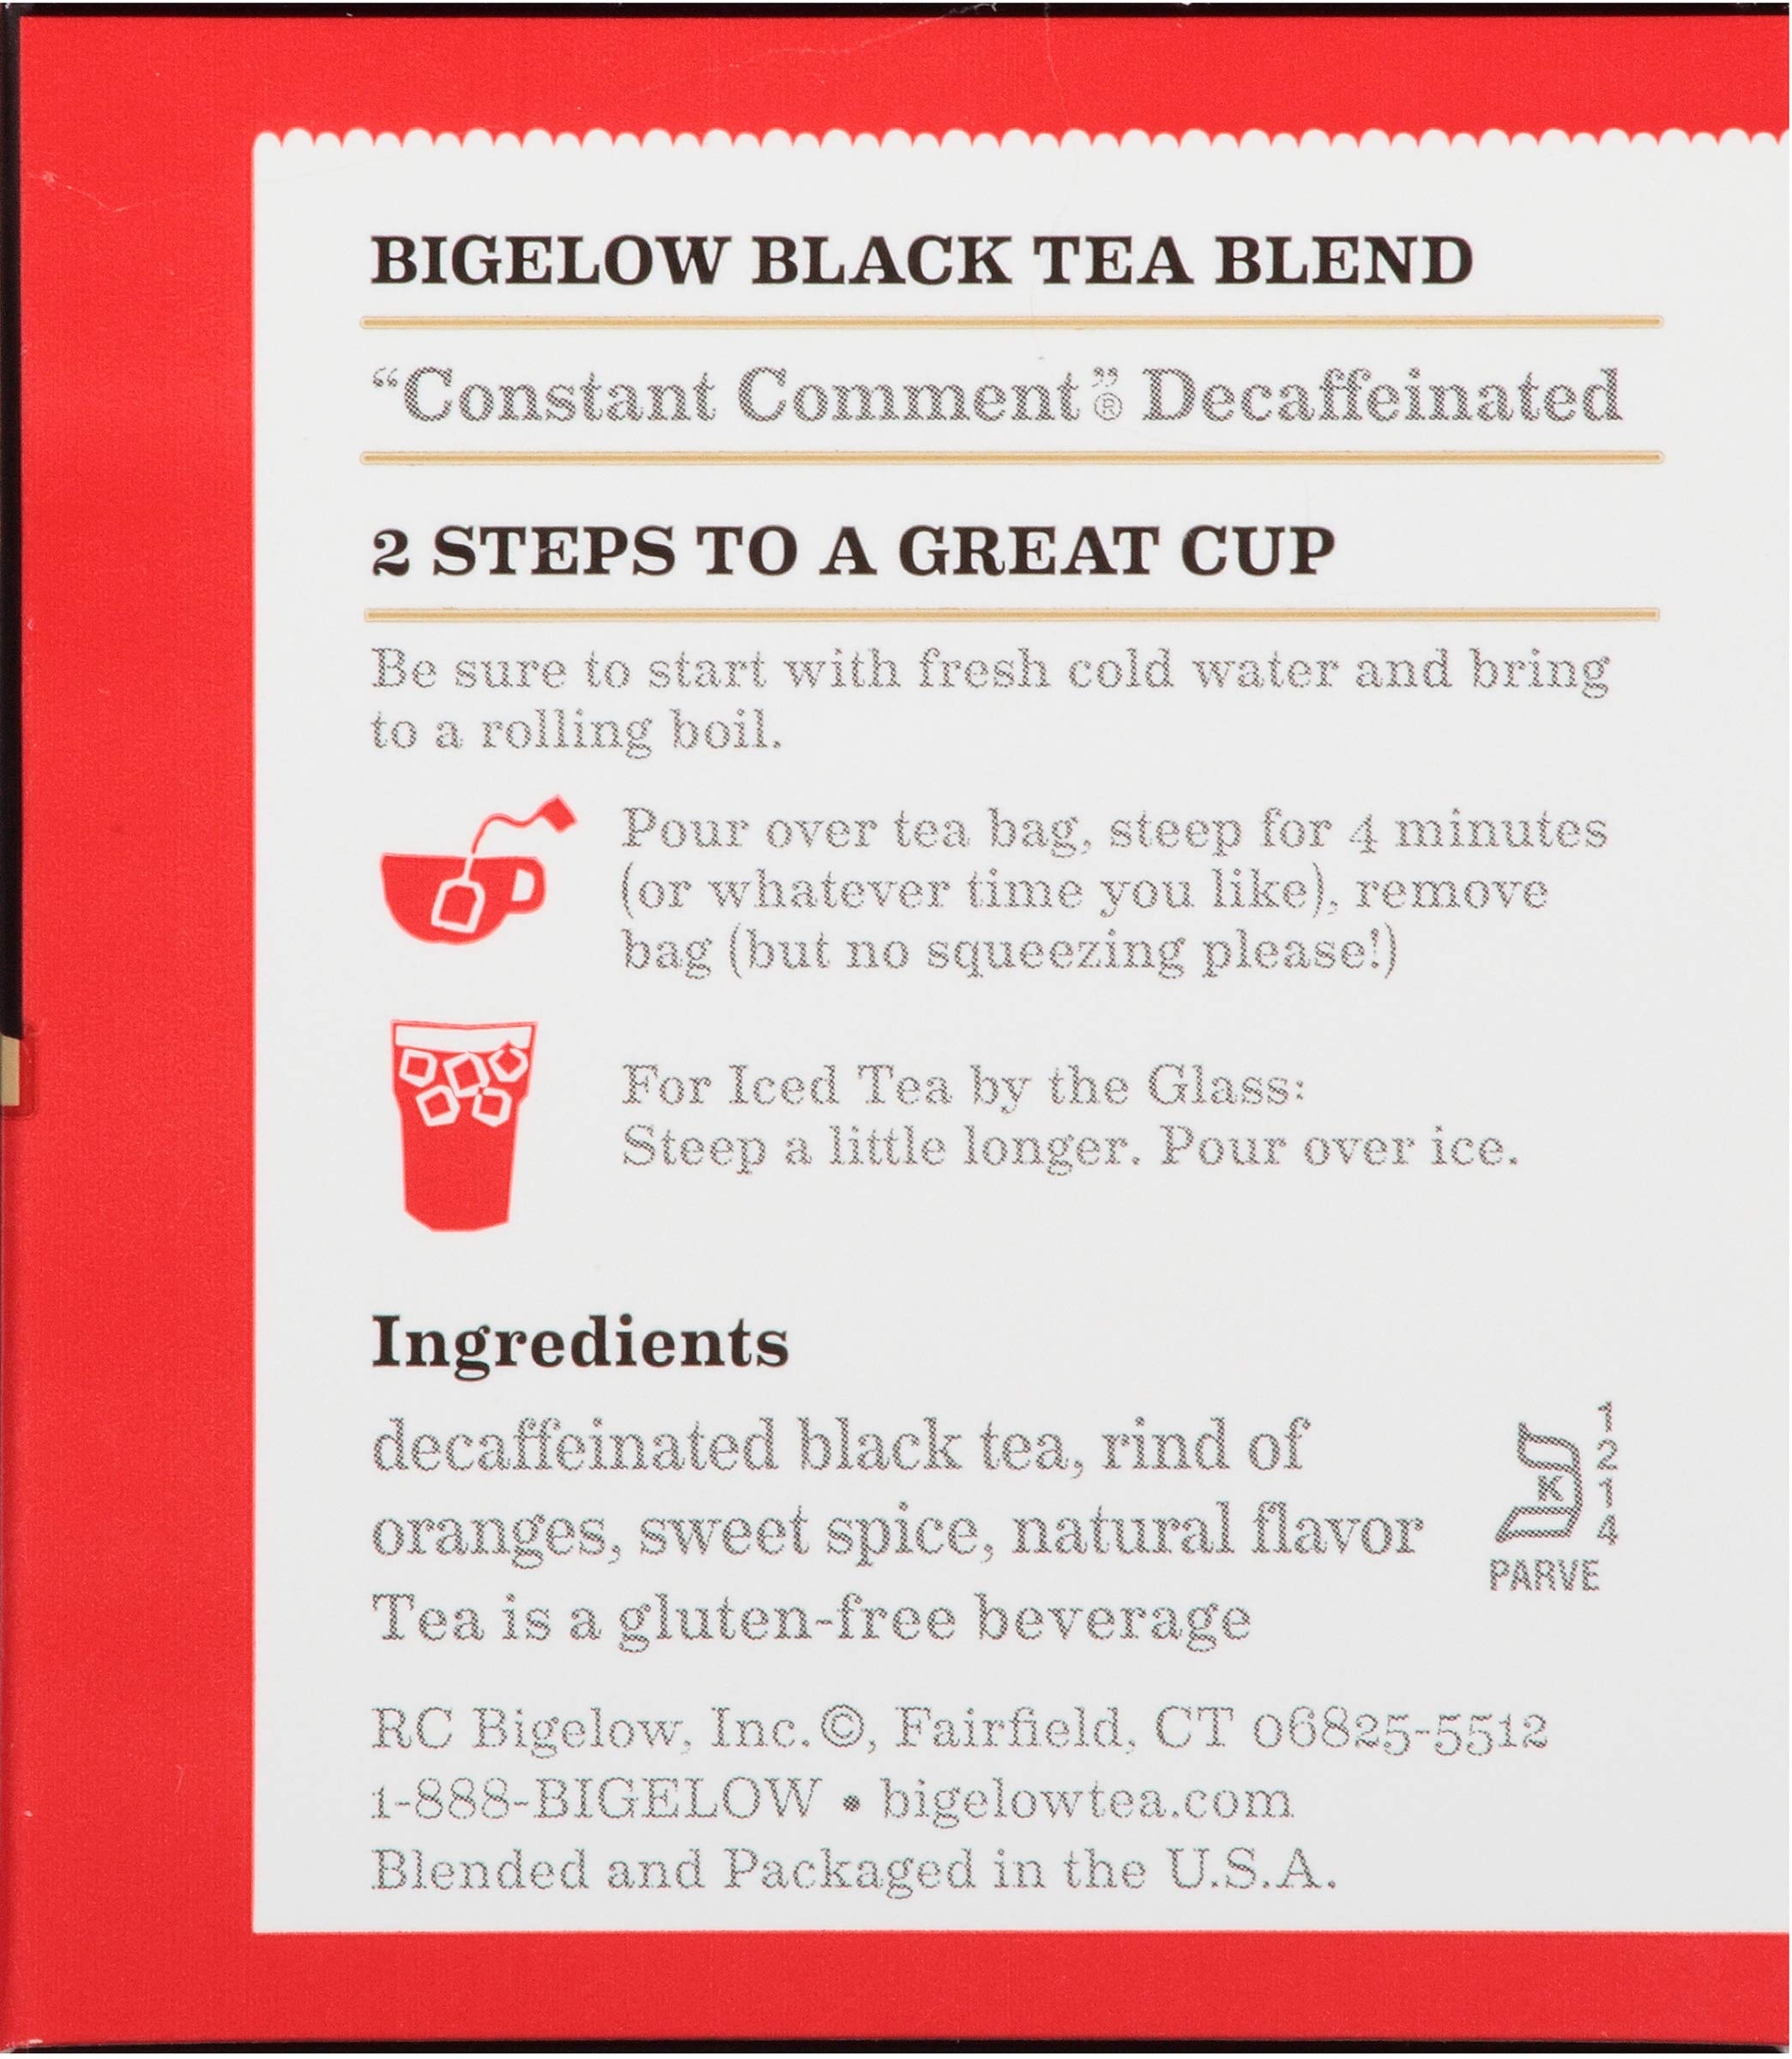 Bigelow Decaffeinated Constant Comment, Decaffeinated Individual Black Tea Bags, for Hot Tea or Iced Tea, Drink Plain or Sweetened with Honey or Sugar, 20 Count, Pack of 6 by Bigelow Tea (Image #4)